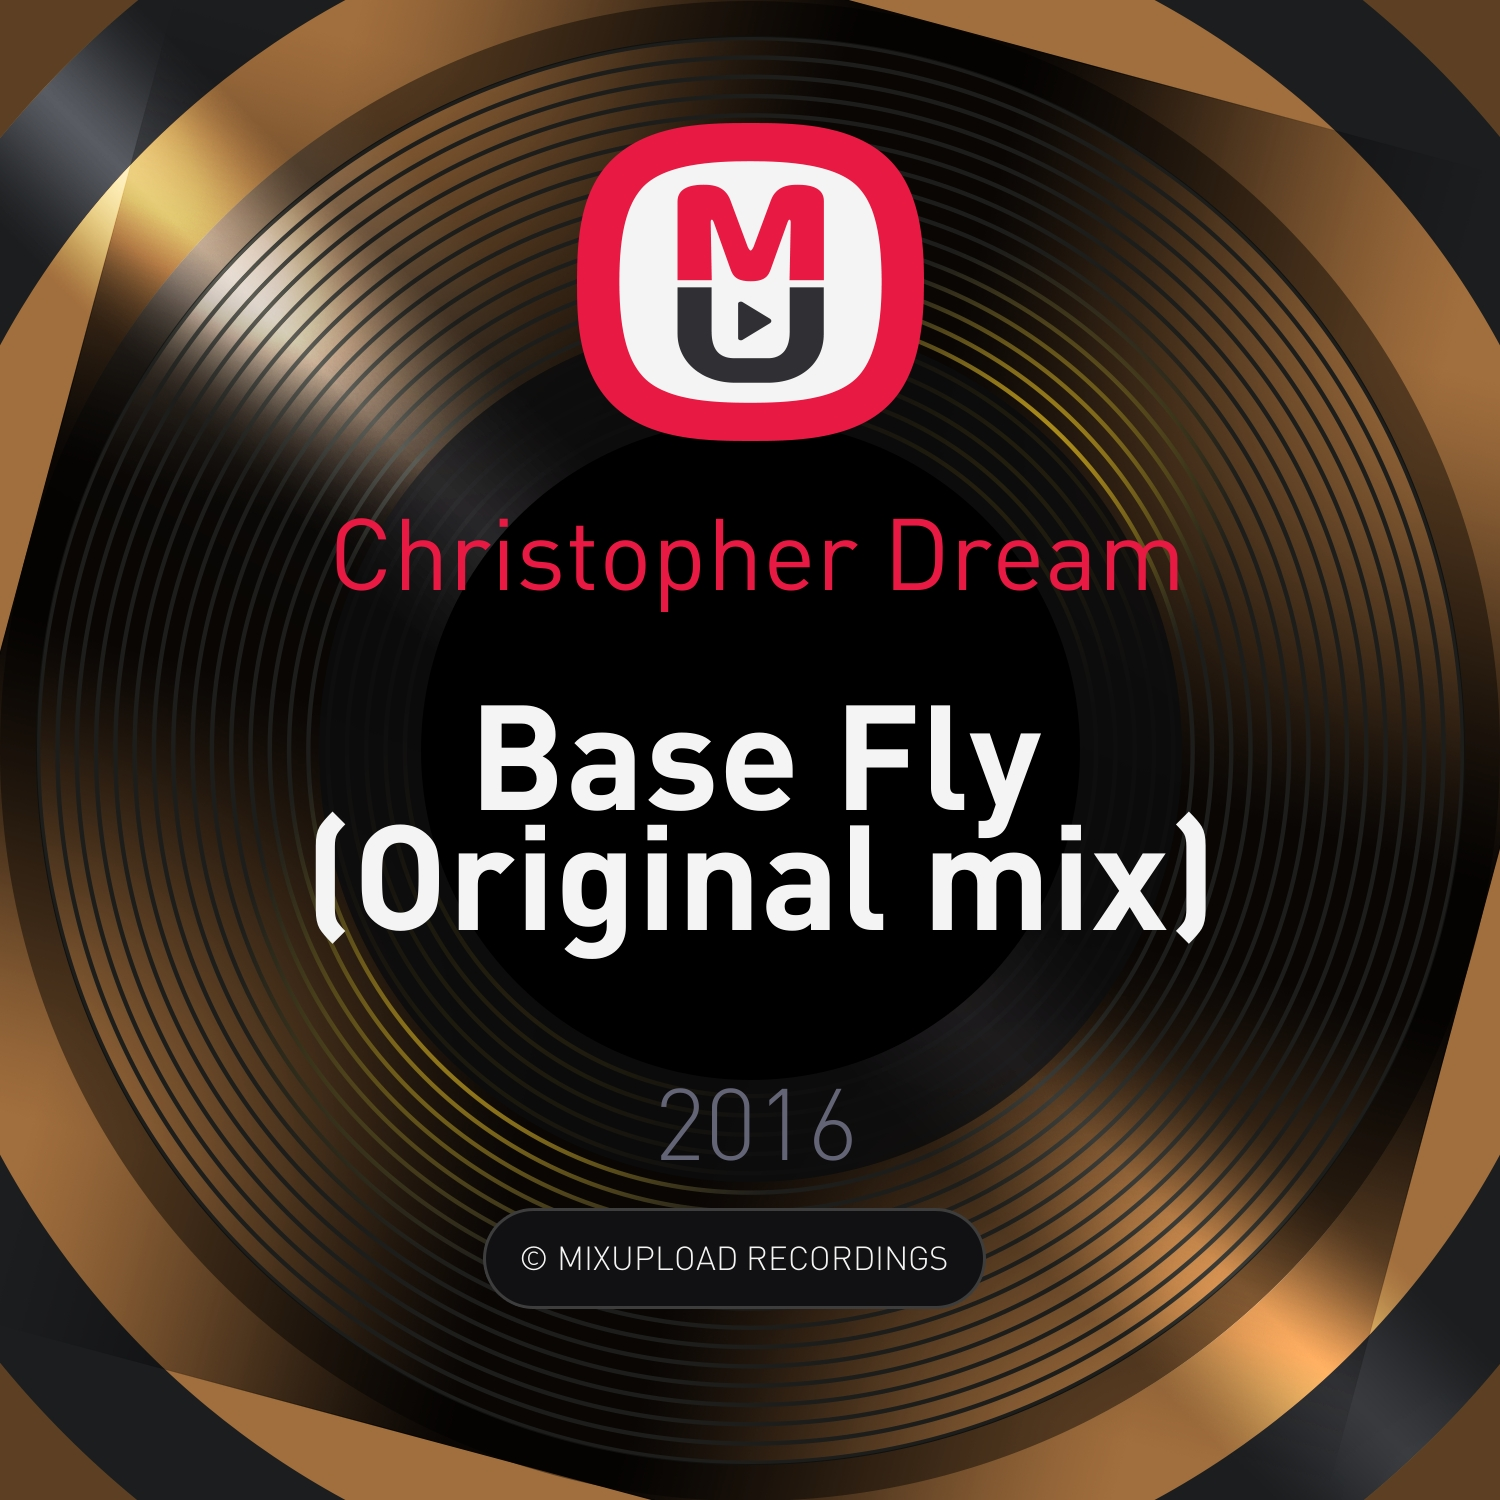 Christopher Dream - Base Fly (Original mix)